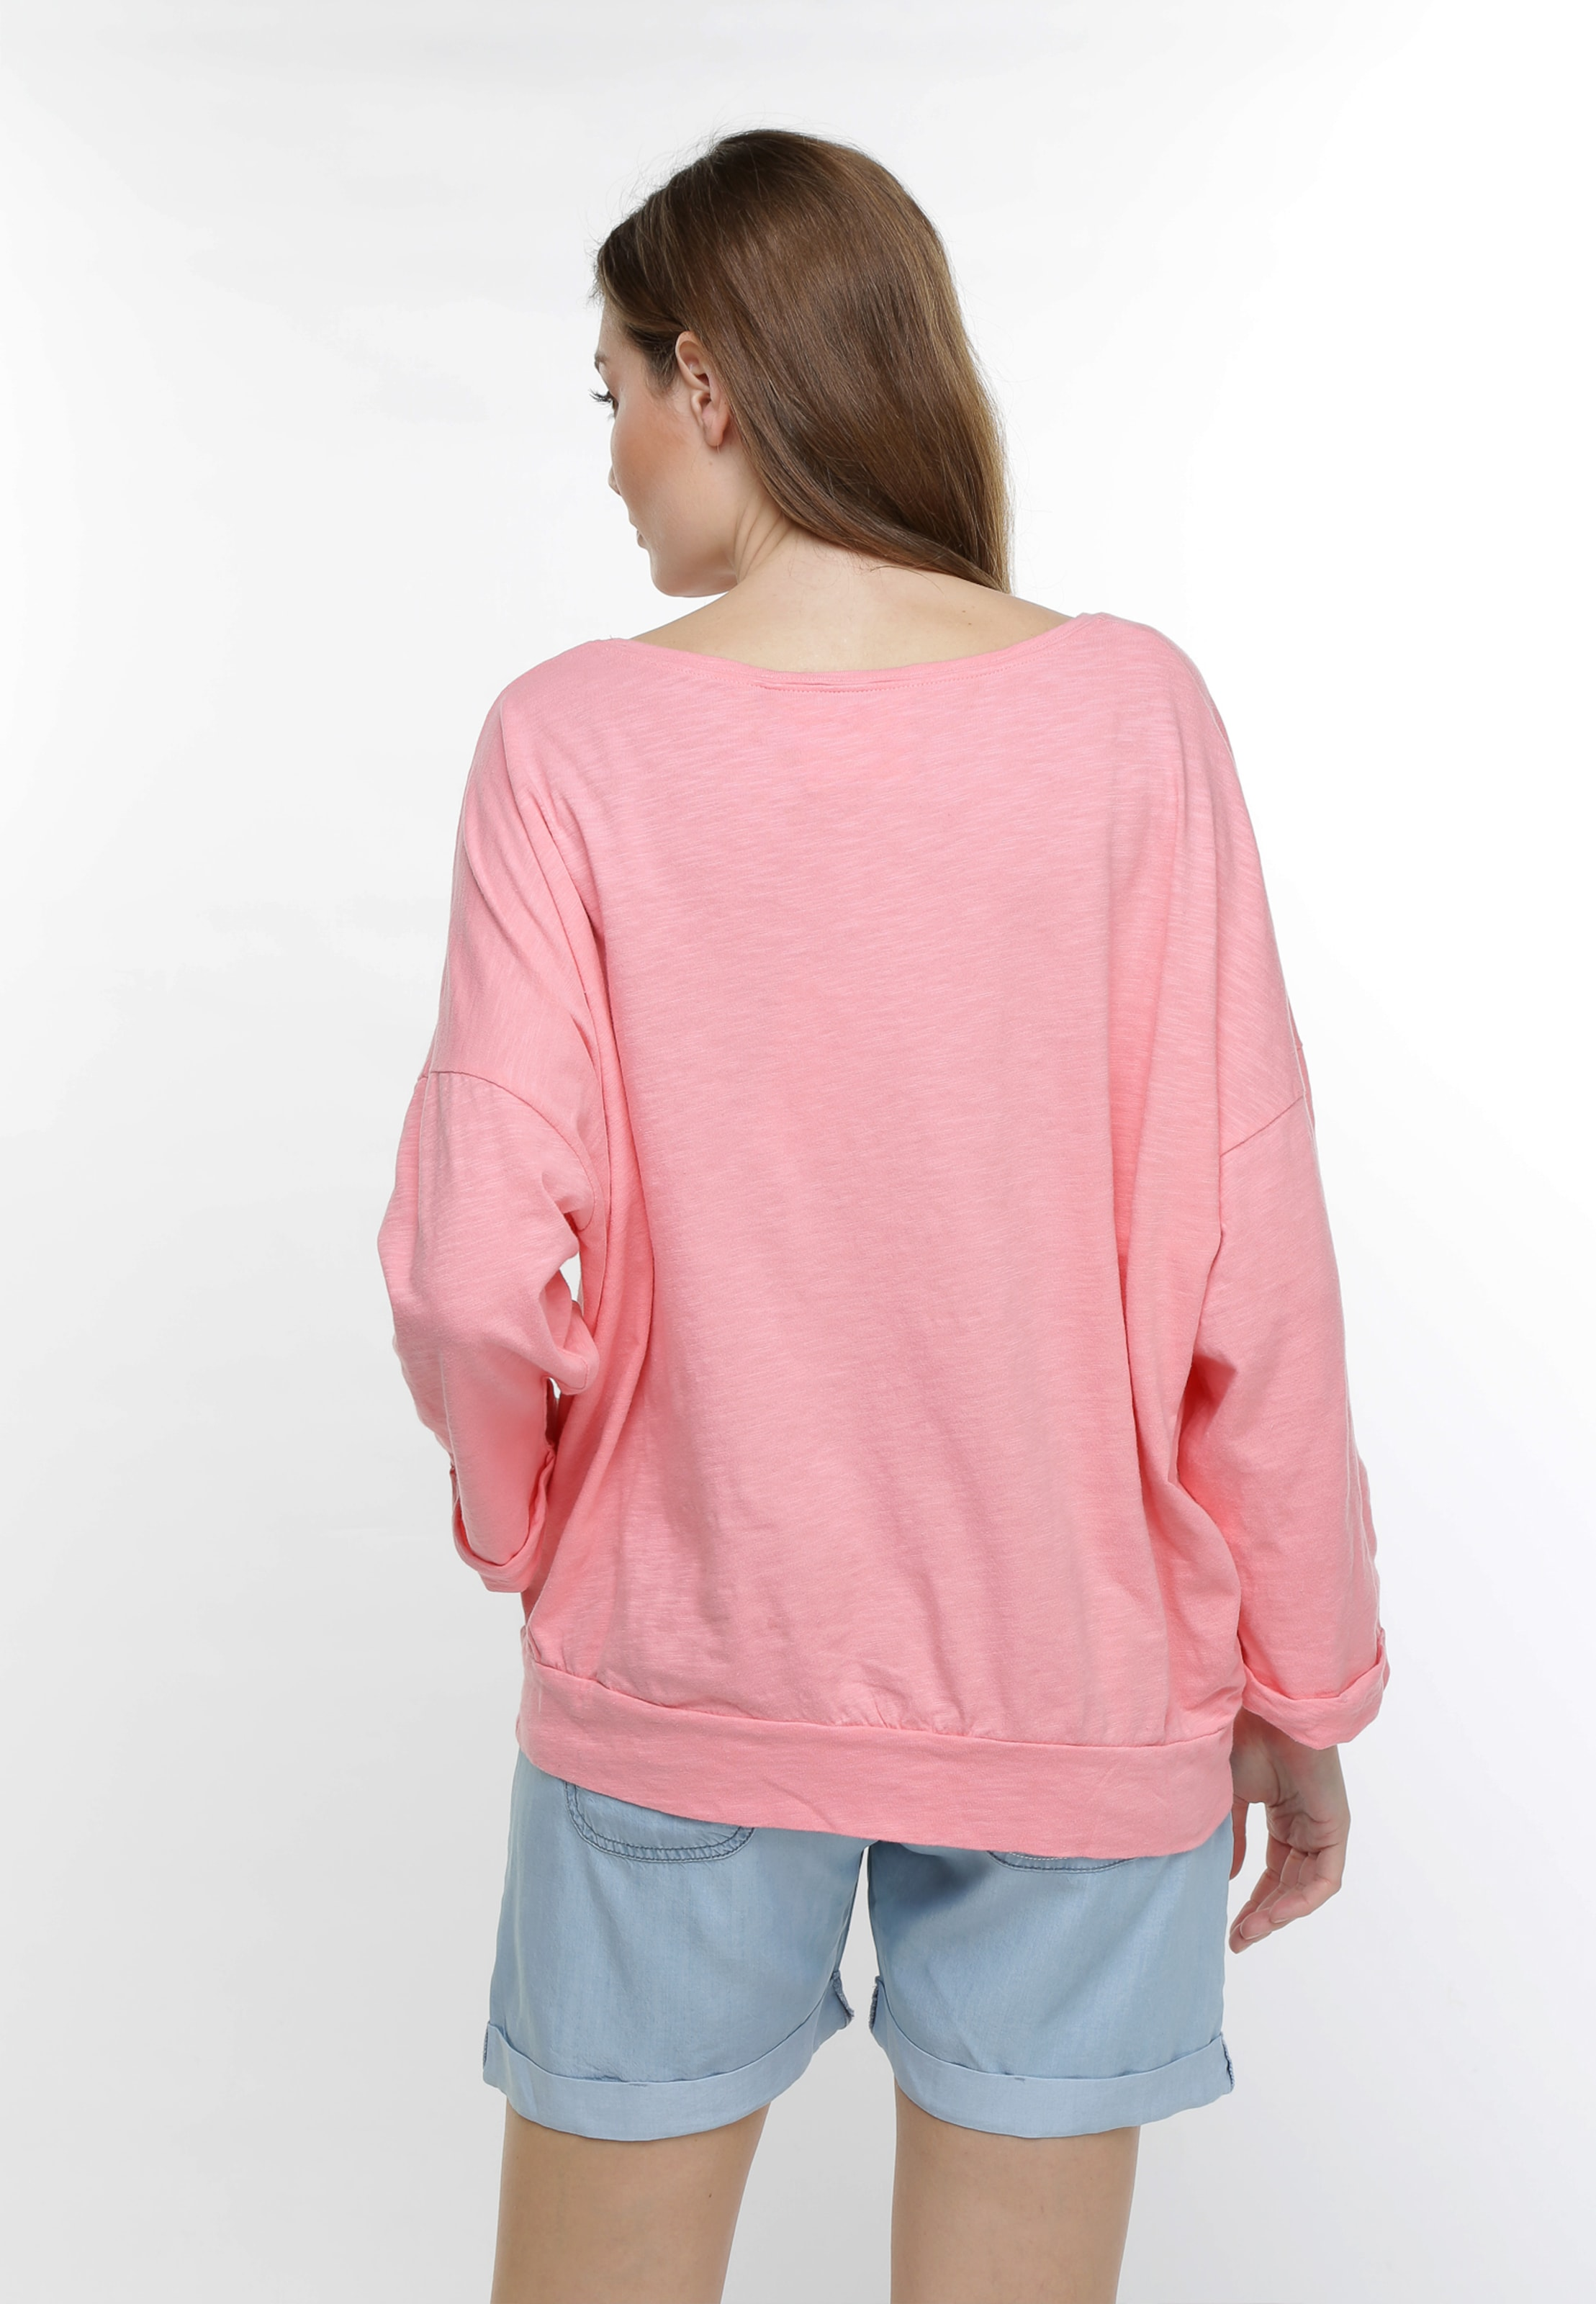 Gwynedds 'pom Shirt' The In Pinkmeliert Shirt sQtxrChd